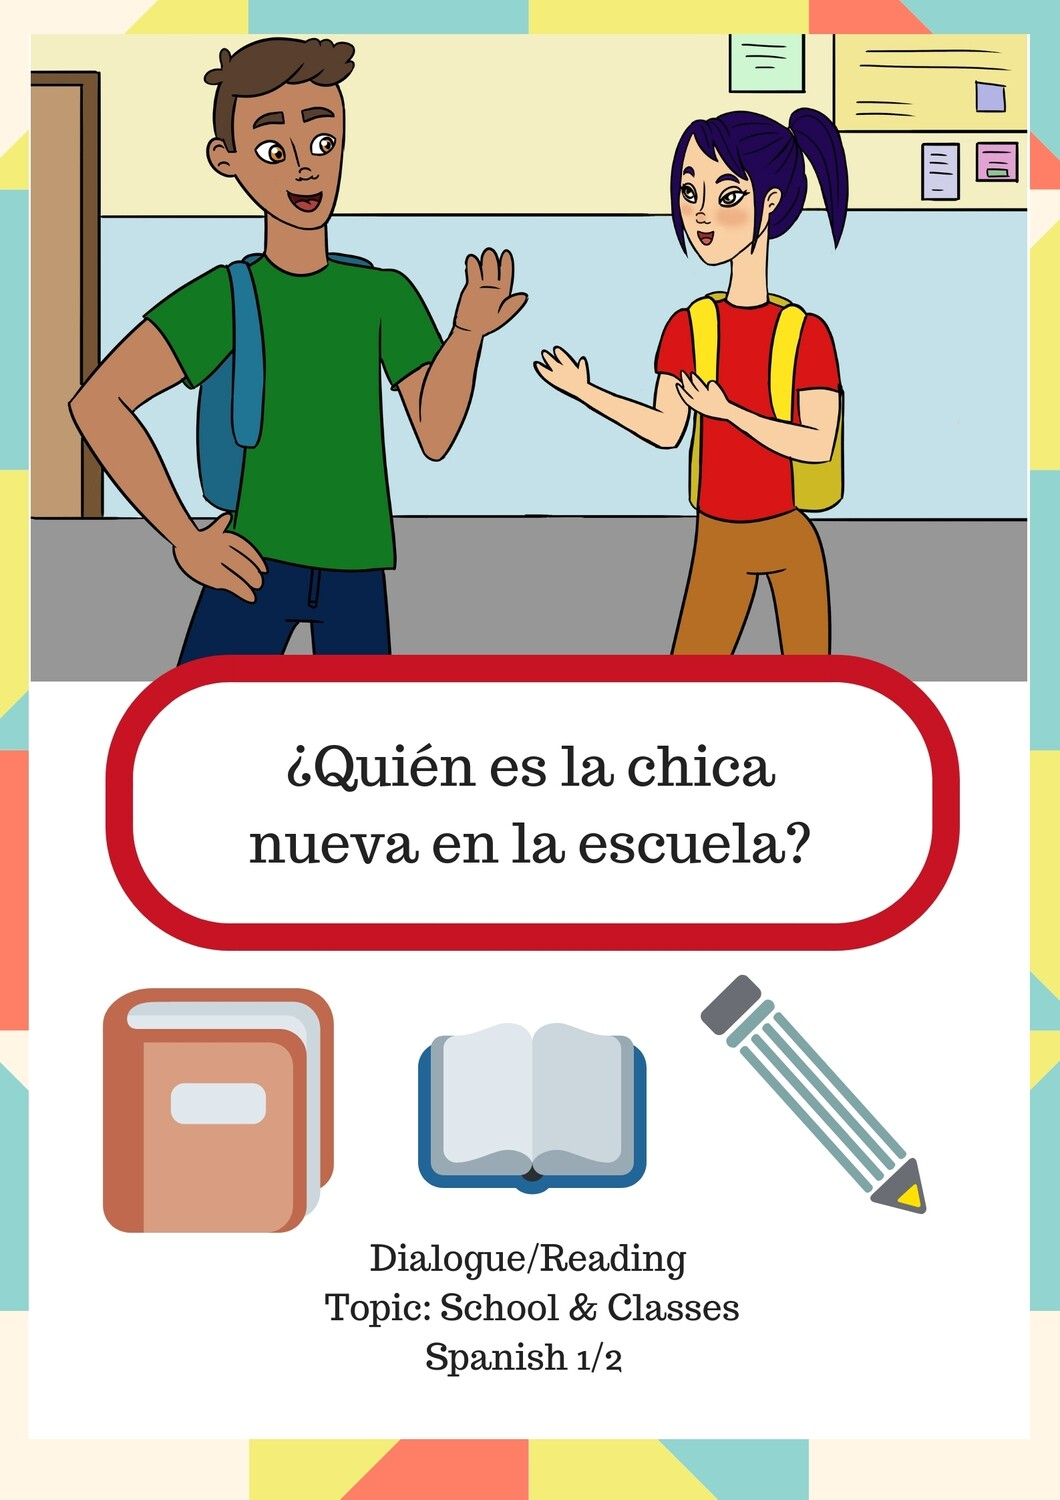 Spanish 1 Dialogue about classes